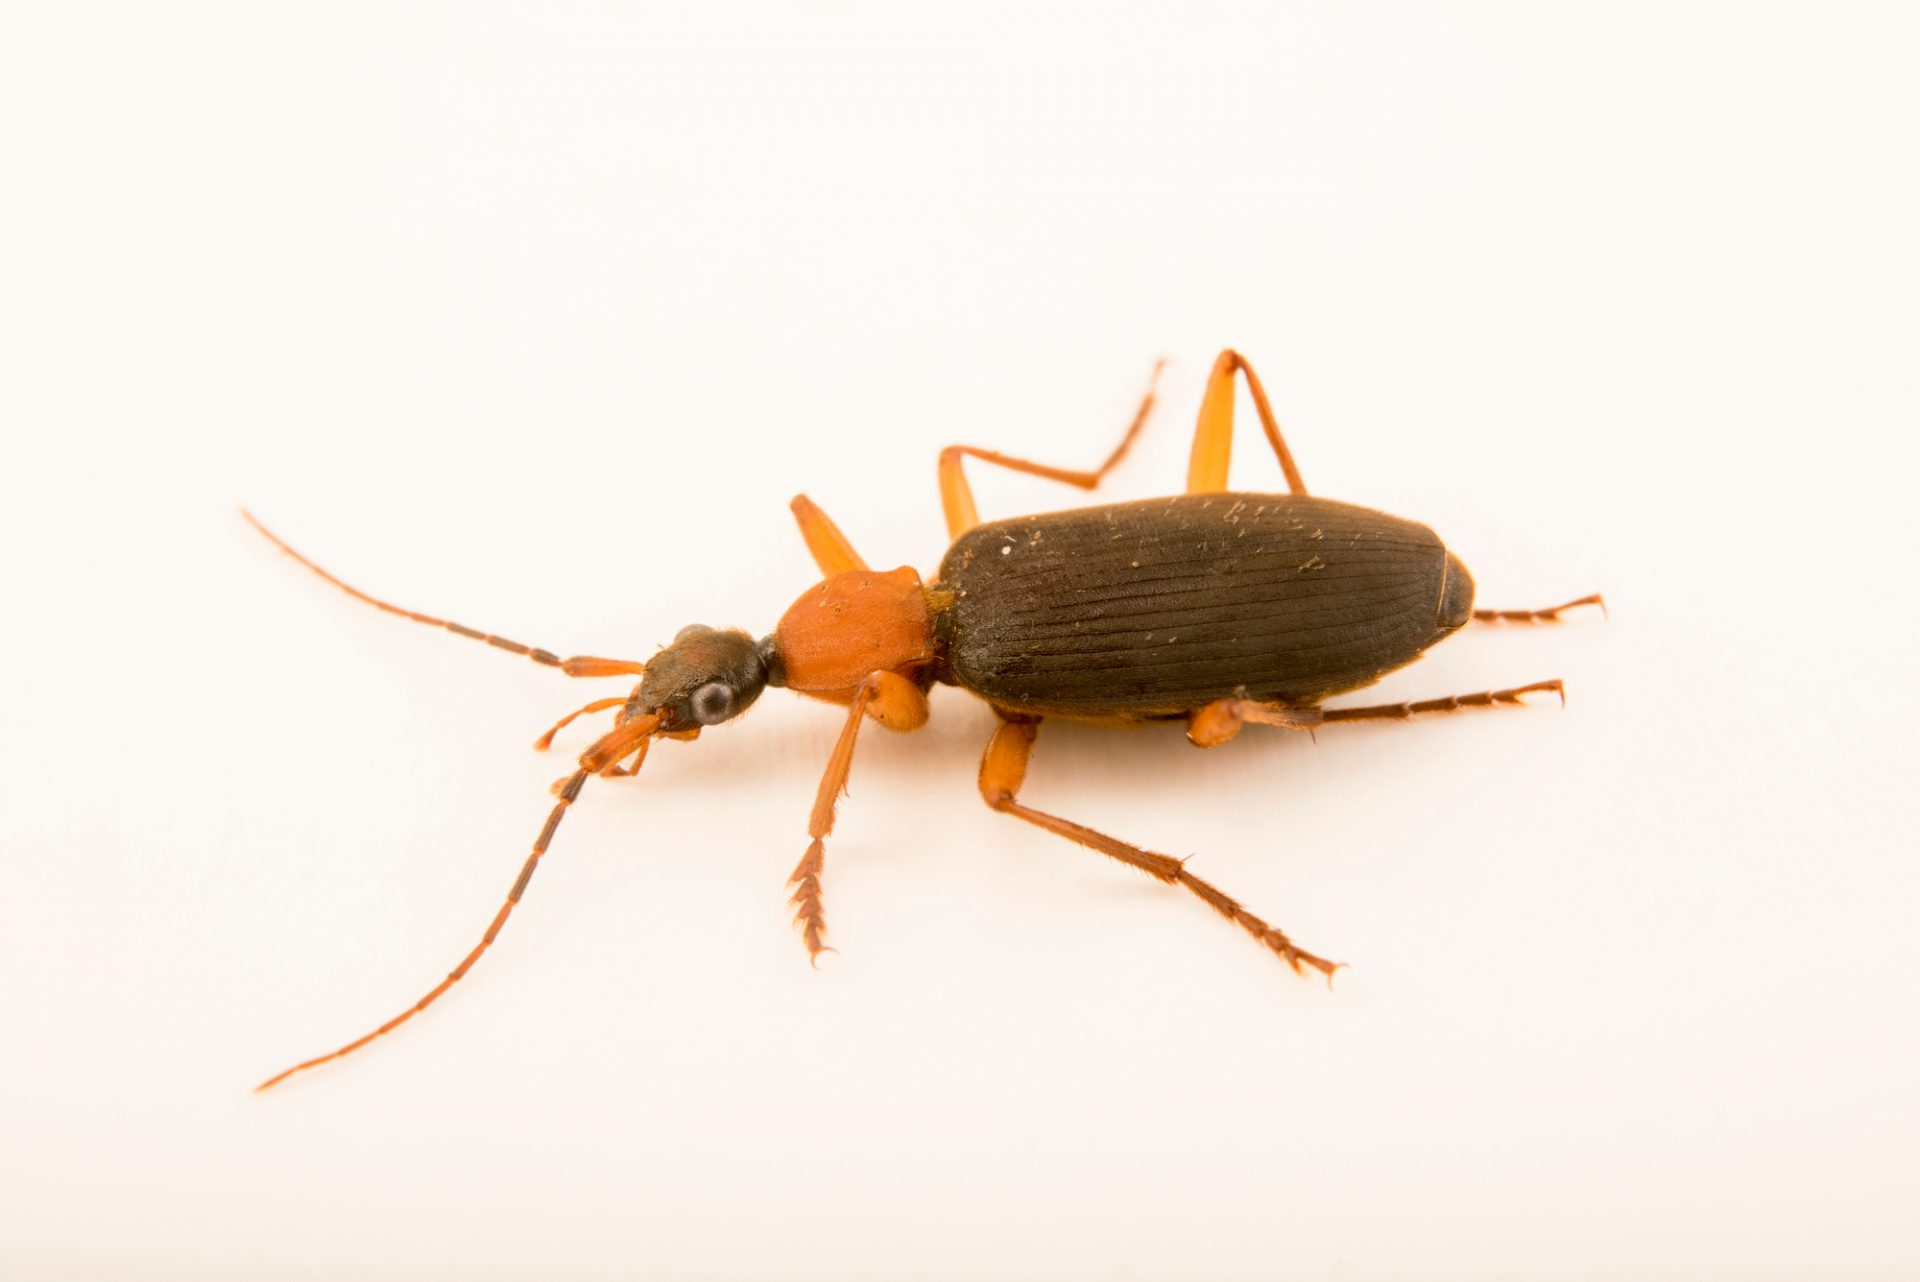 Photo: False bombardier beetle (Galerita bicolor) at the Audubon Insectarium.